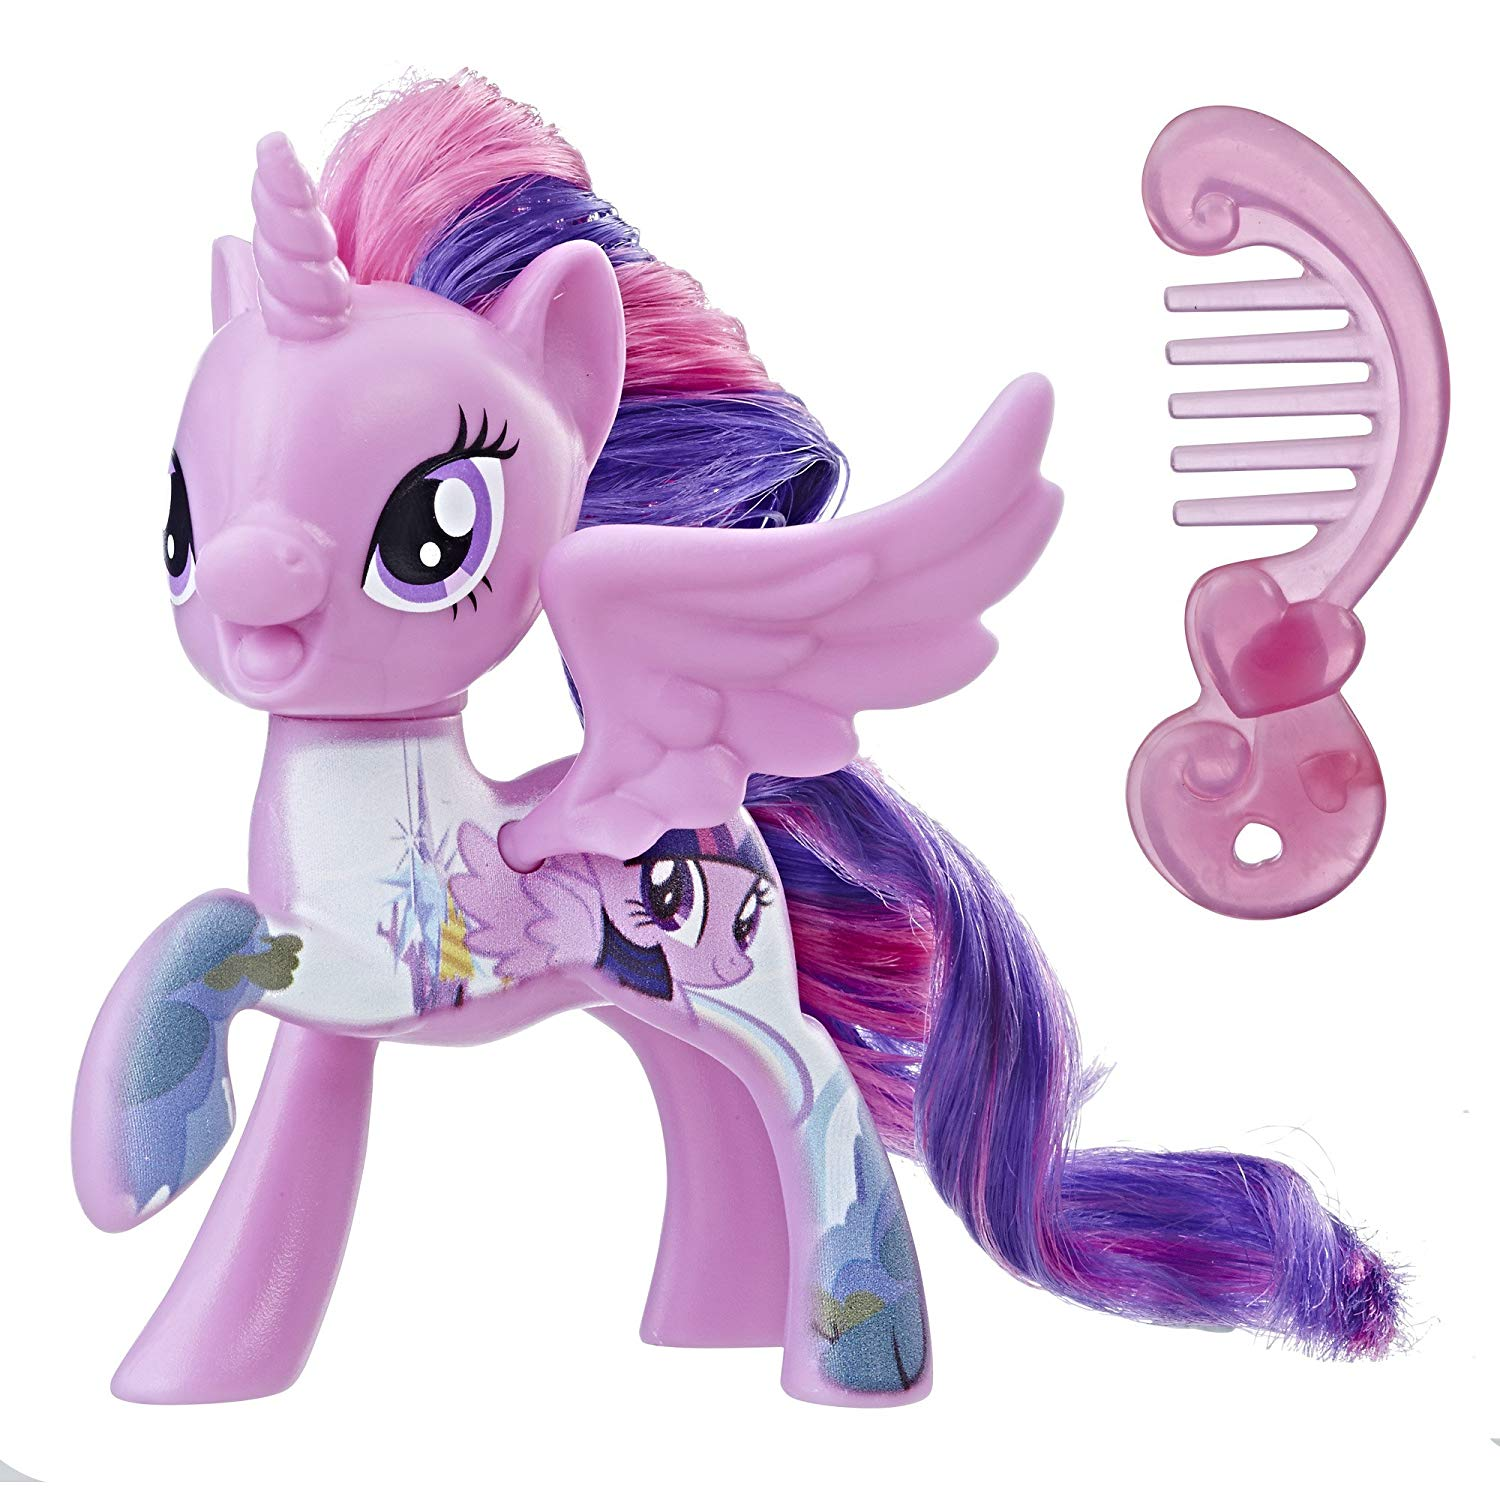 The Movie All About Princess Twilight Sparkle Doll, Fun, colorful ponies with pretty hair and Cutie Mark designs By My Little Pony